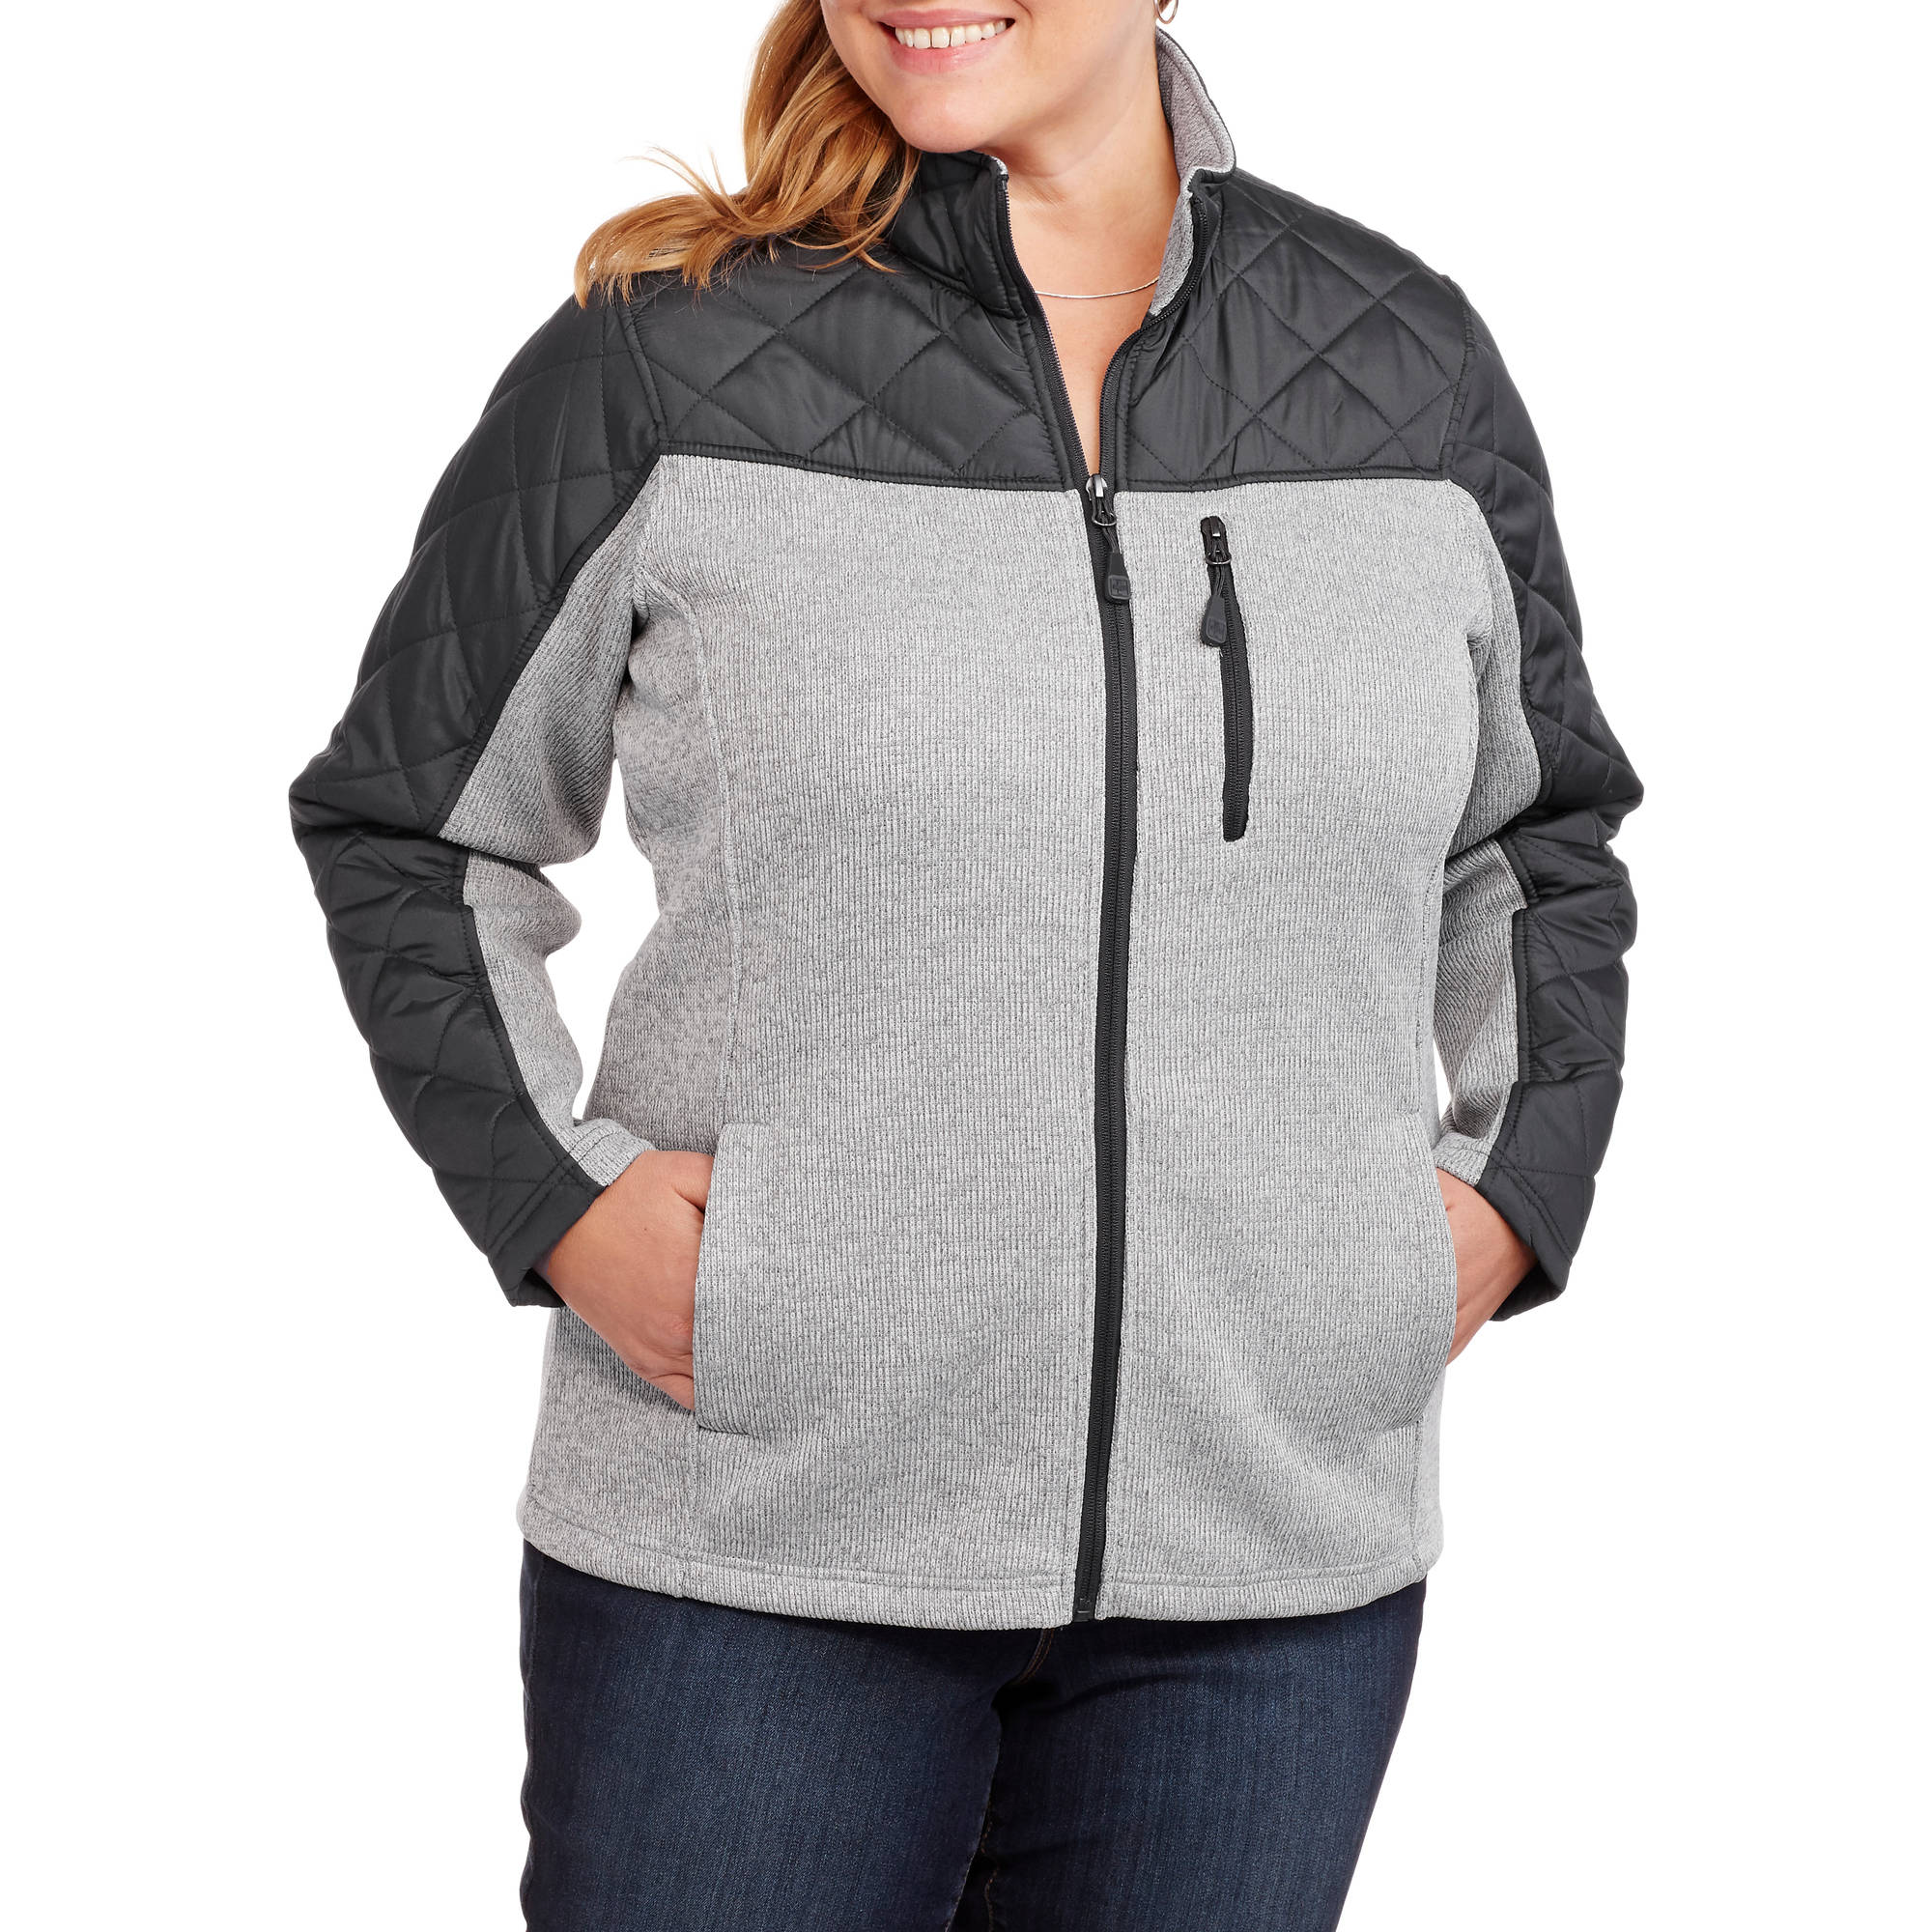 Swiss Tech Women's Plus-Size Quilted Tech Fleece Jacket